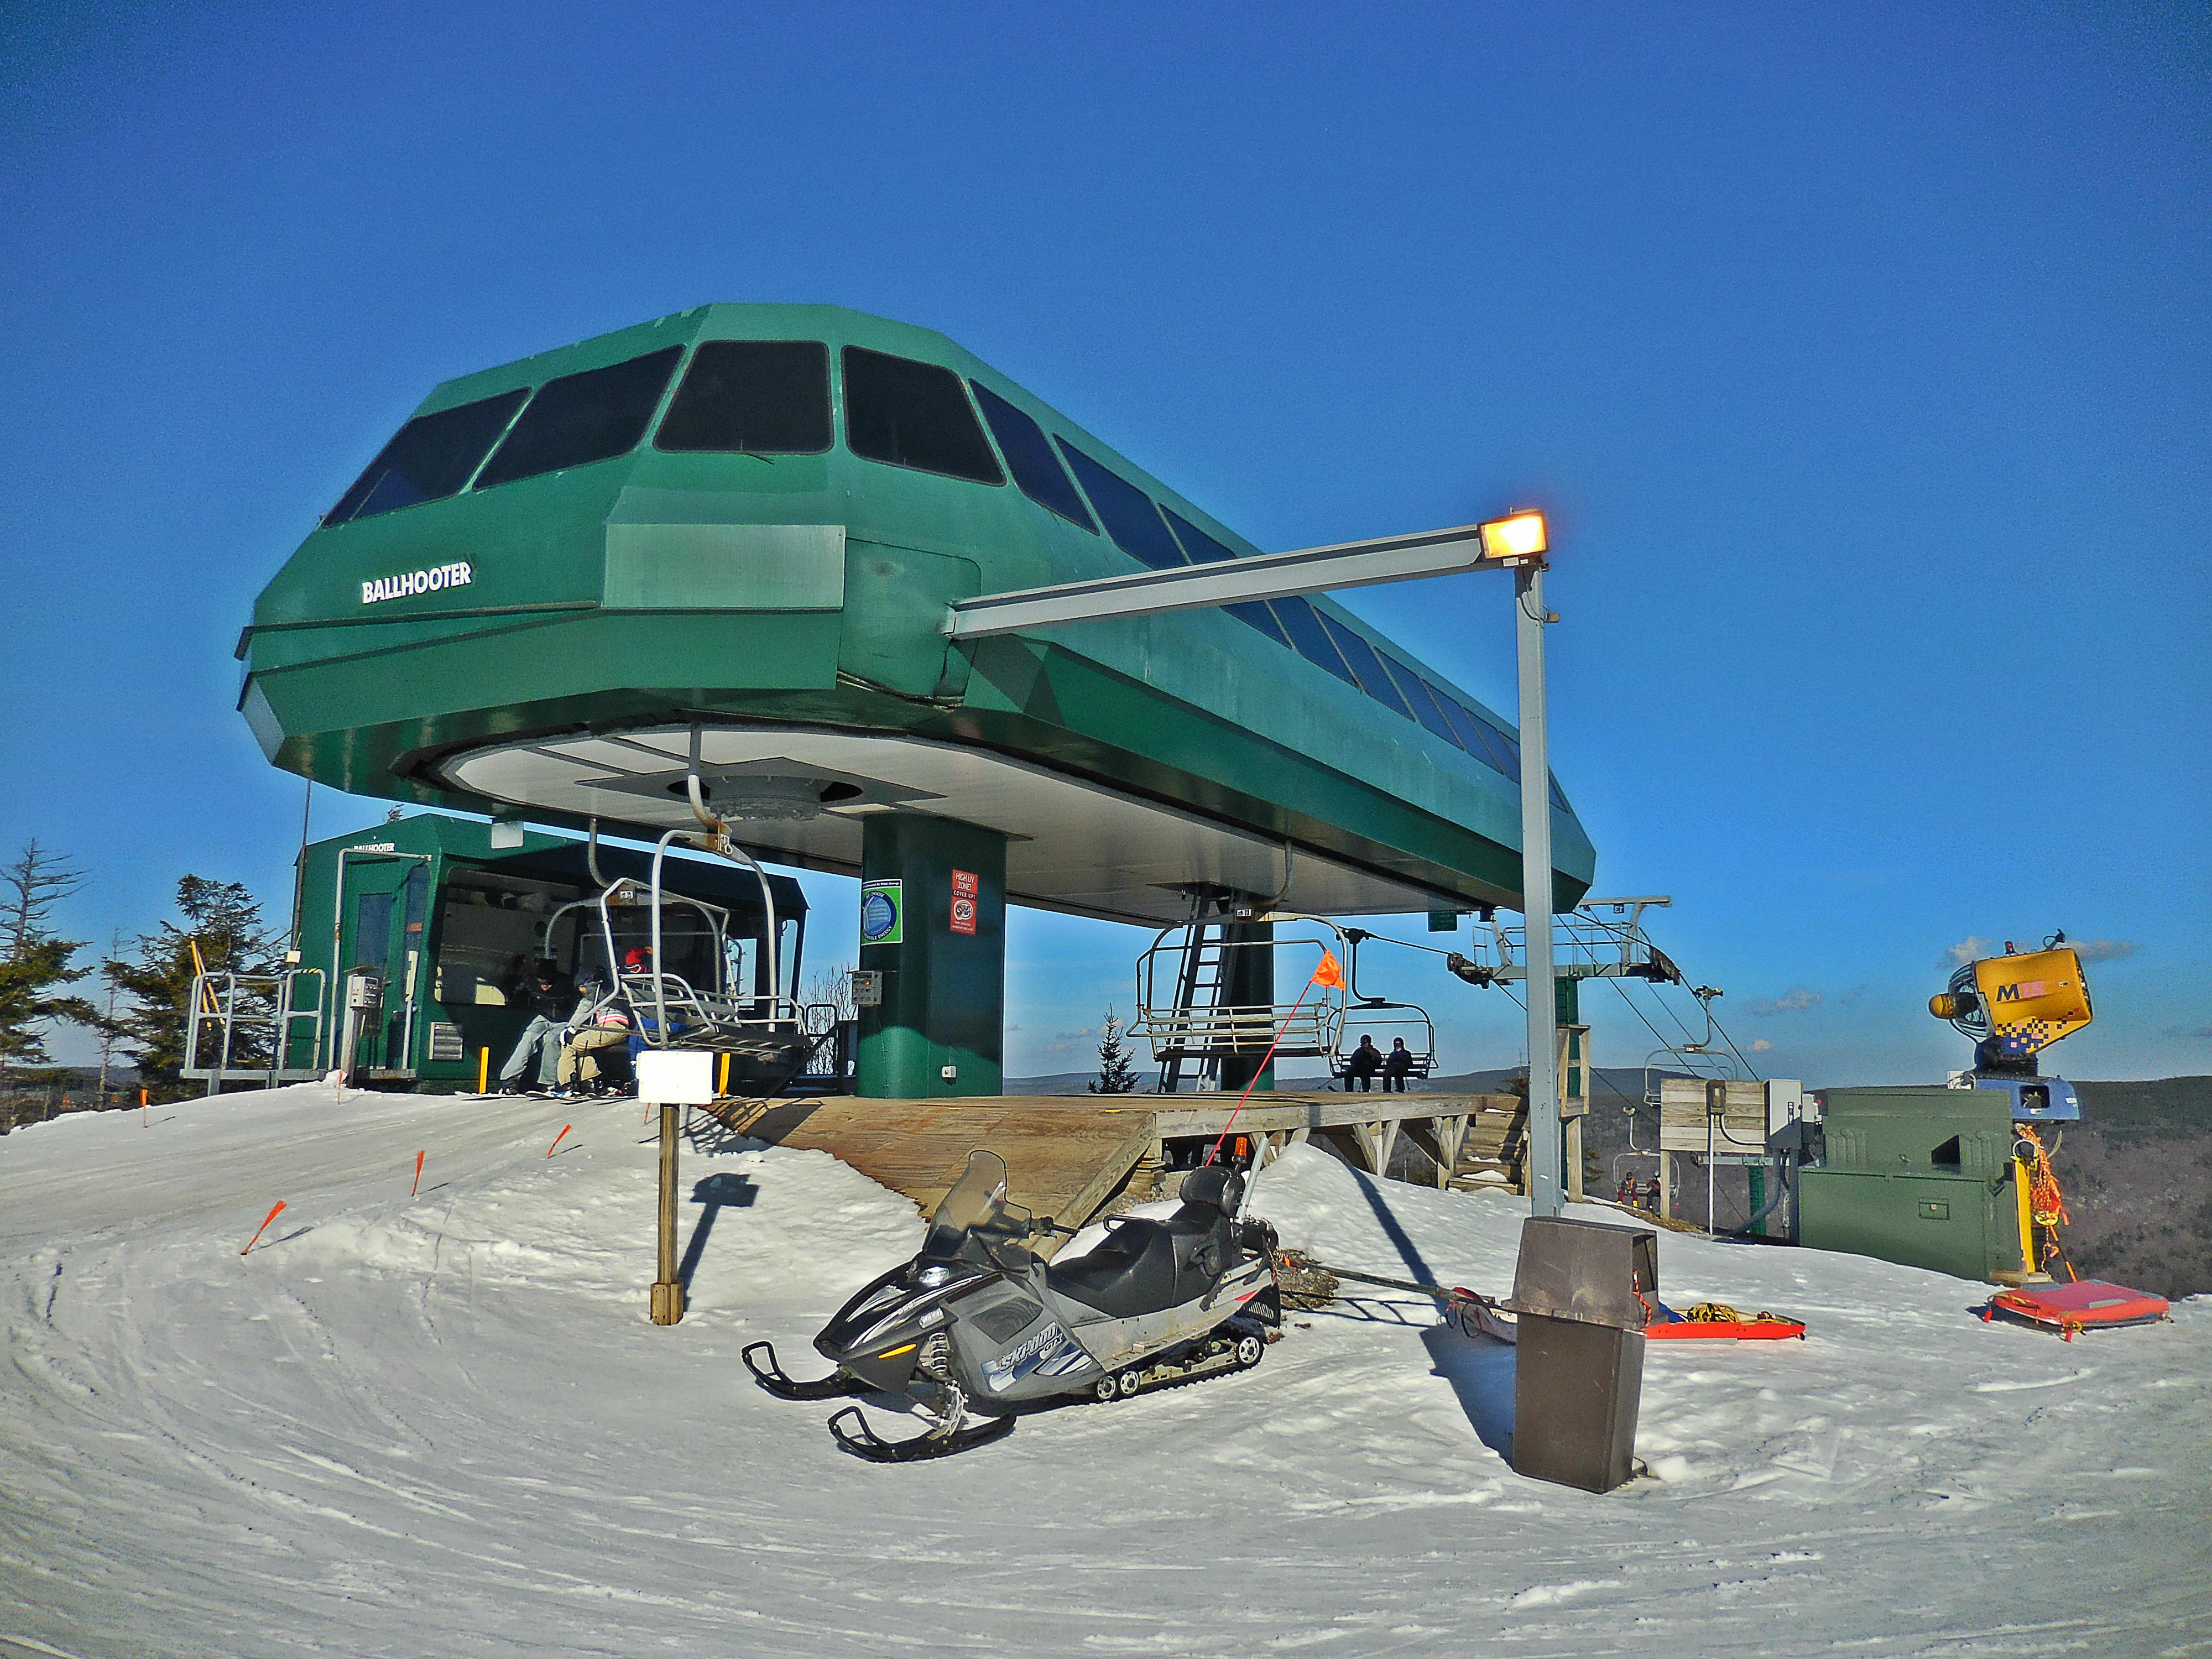 The Ballhooter high-speed chairlift is only steps away from ML222!